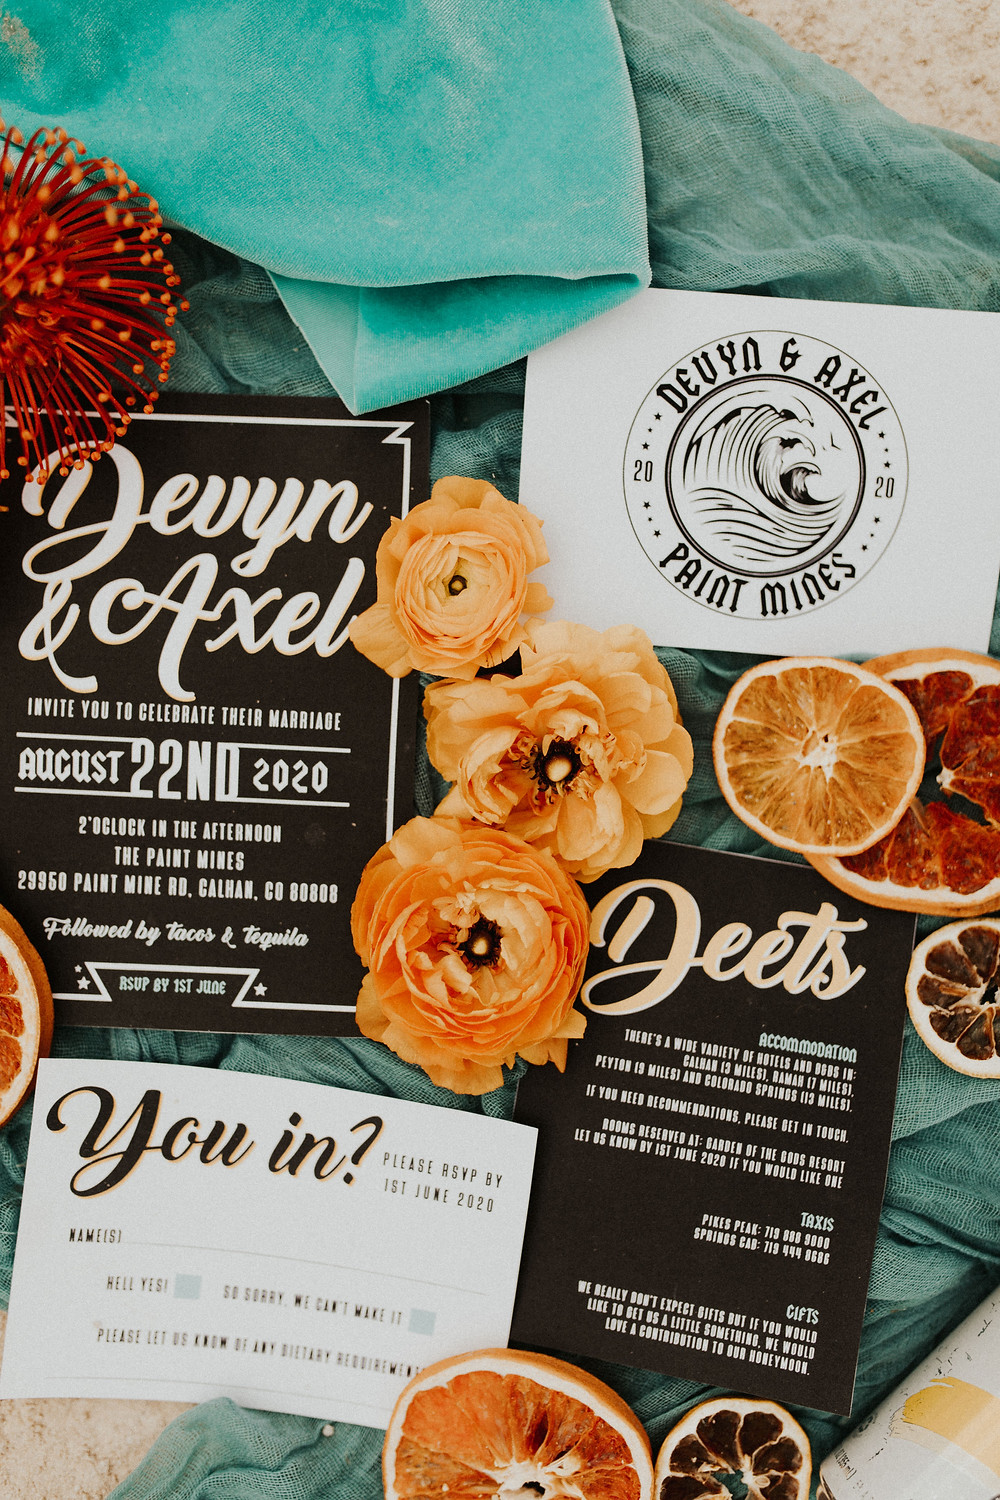 alternative rock n roll wedding stationery set designed by peach wolfe paper co including an RSVP card and details card